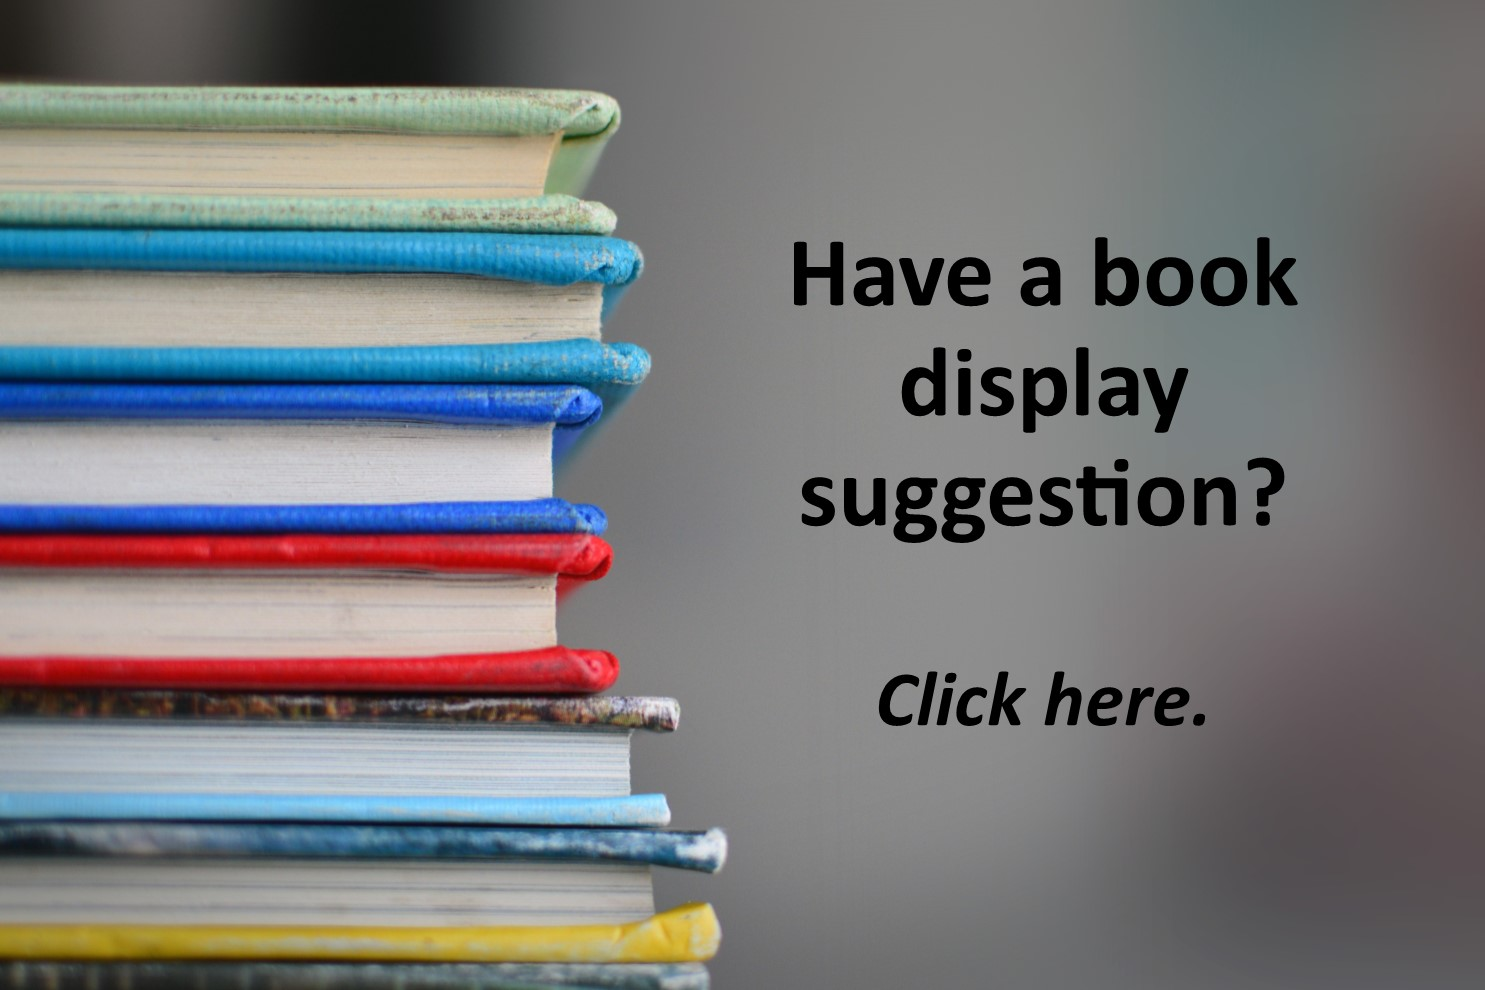 Book display suggestions